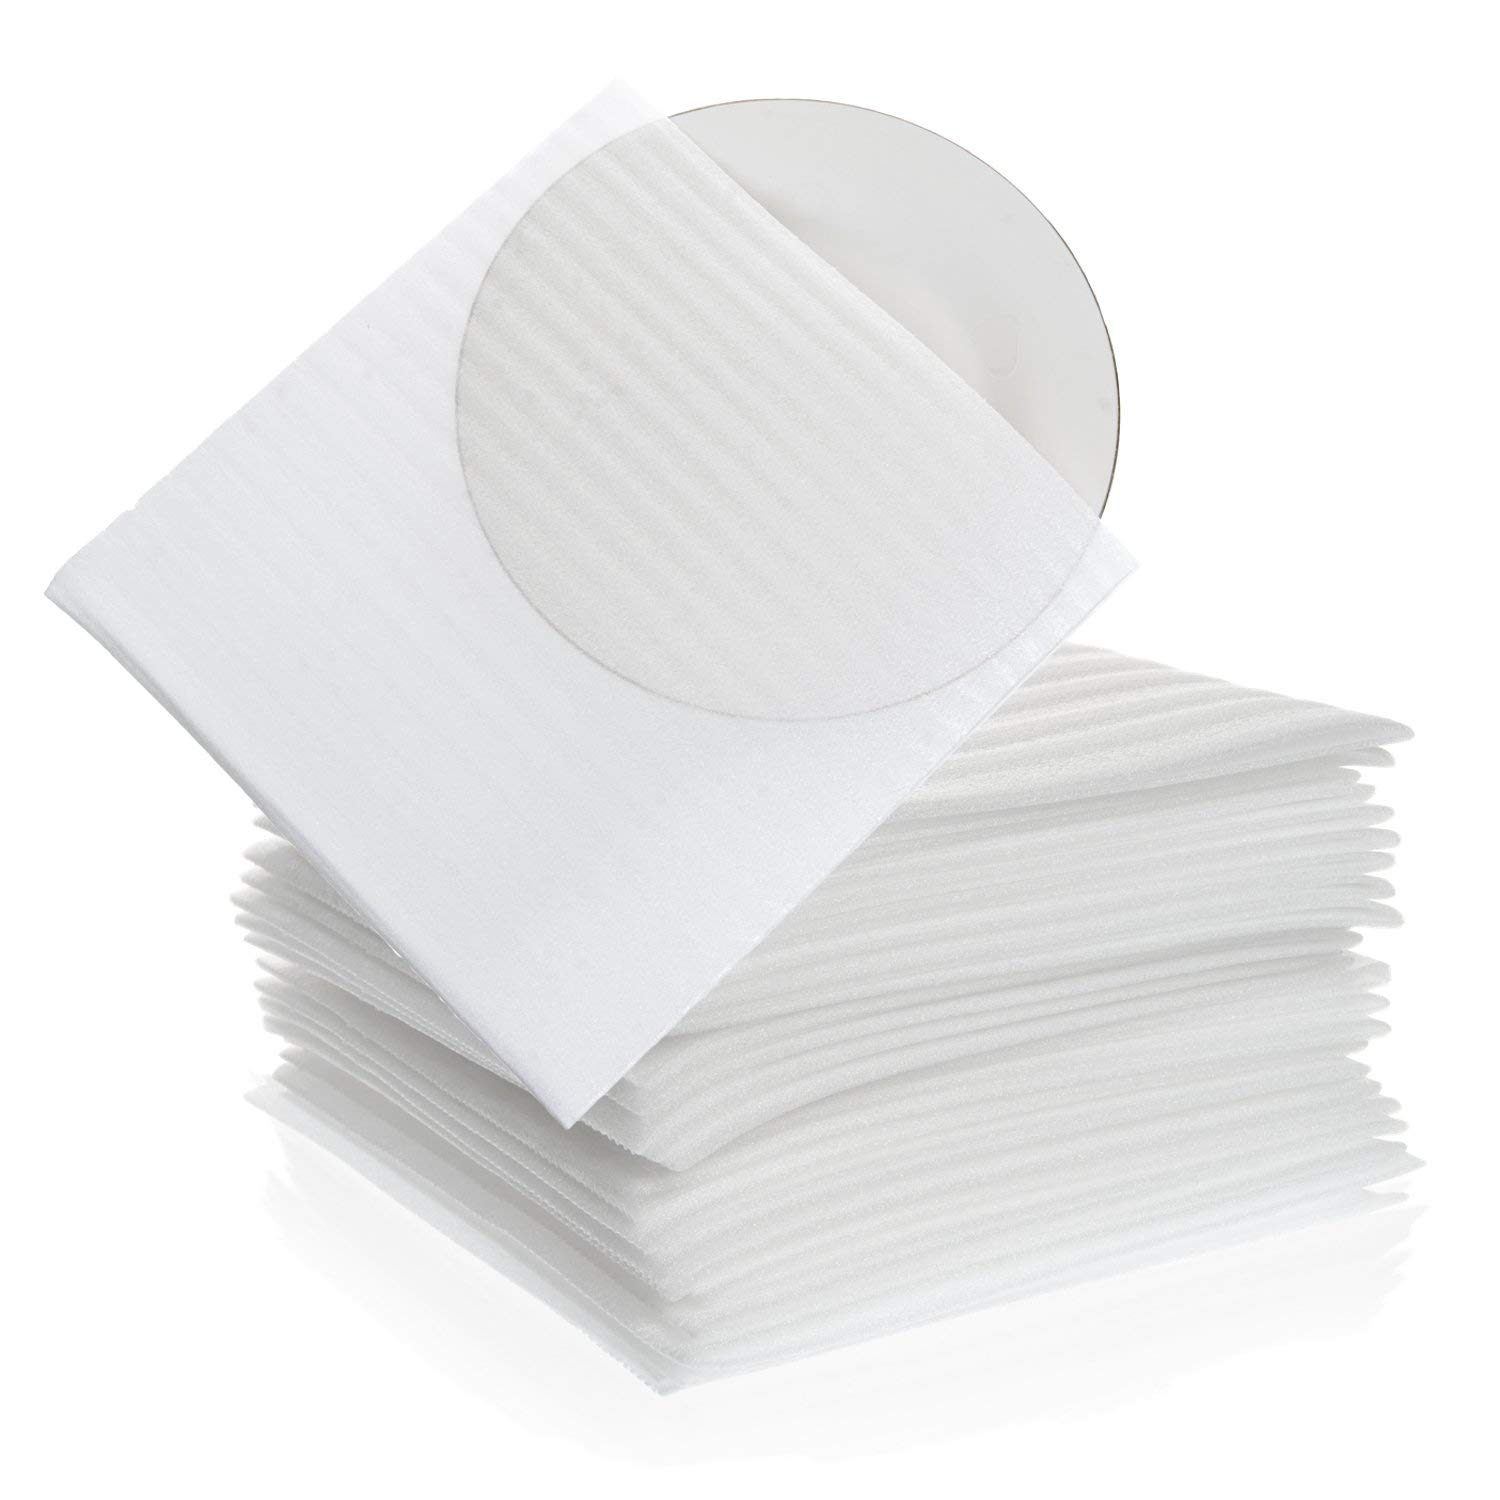 "Foam Wrap Cup Pouches 9 1/8"" x 9 3/4"" (30 Count), Cushion Pouches to Protect Dishes, Glasses, Porcelain & Fragile Items, Packing Supplies for Moving by California Basics"